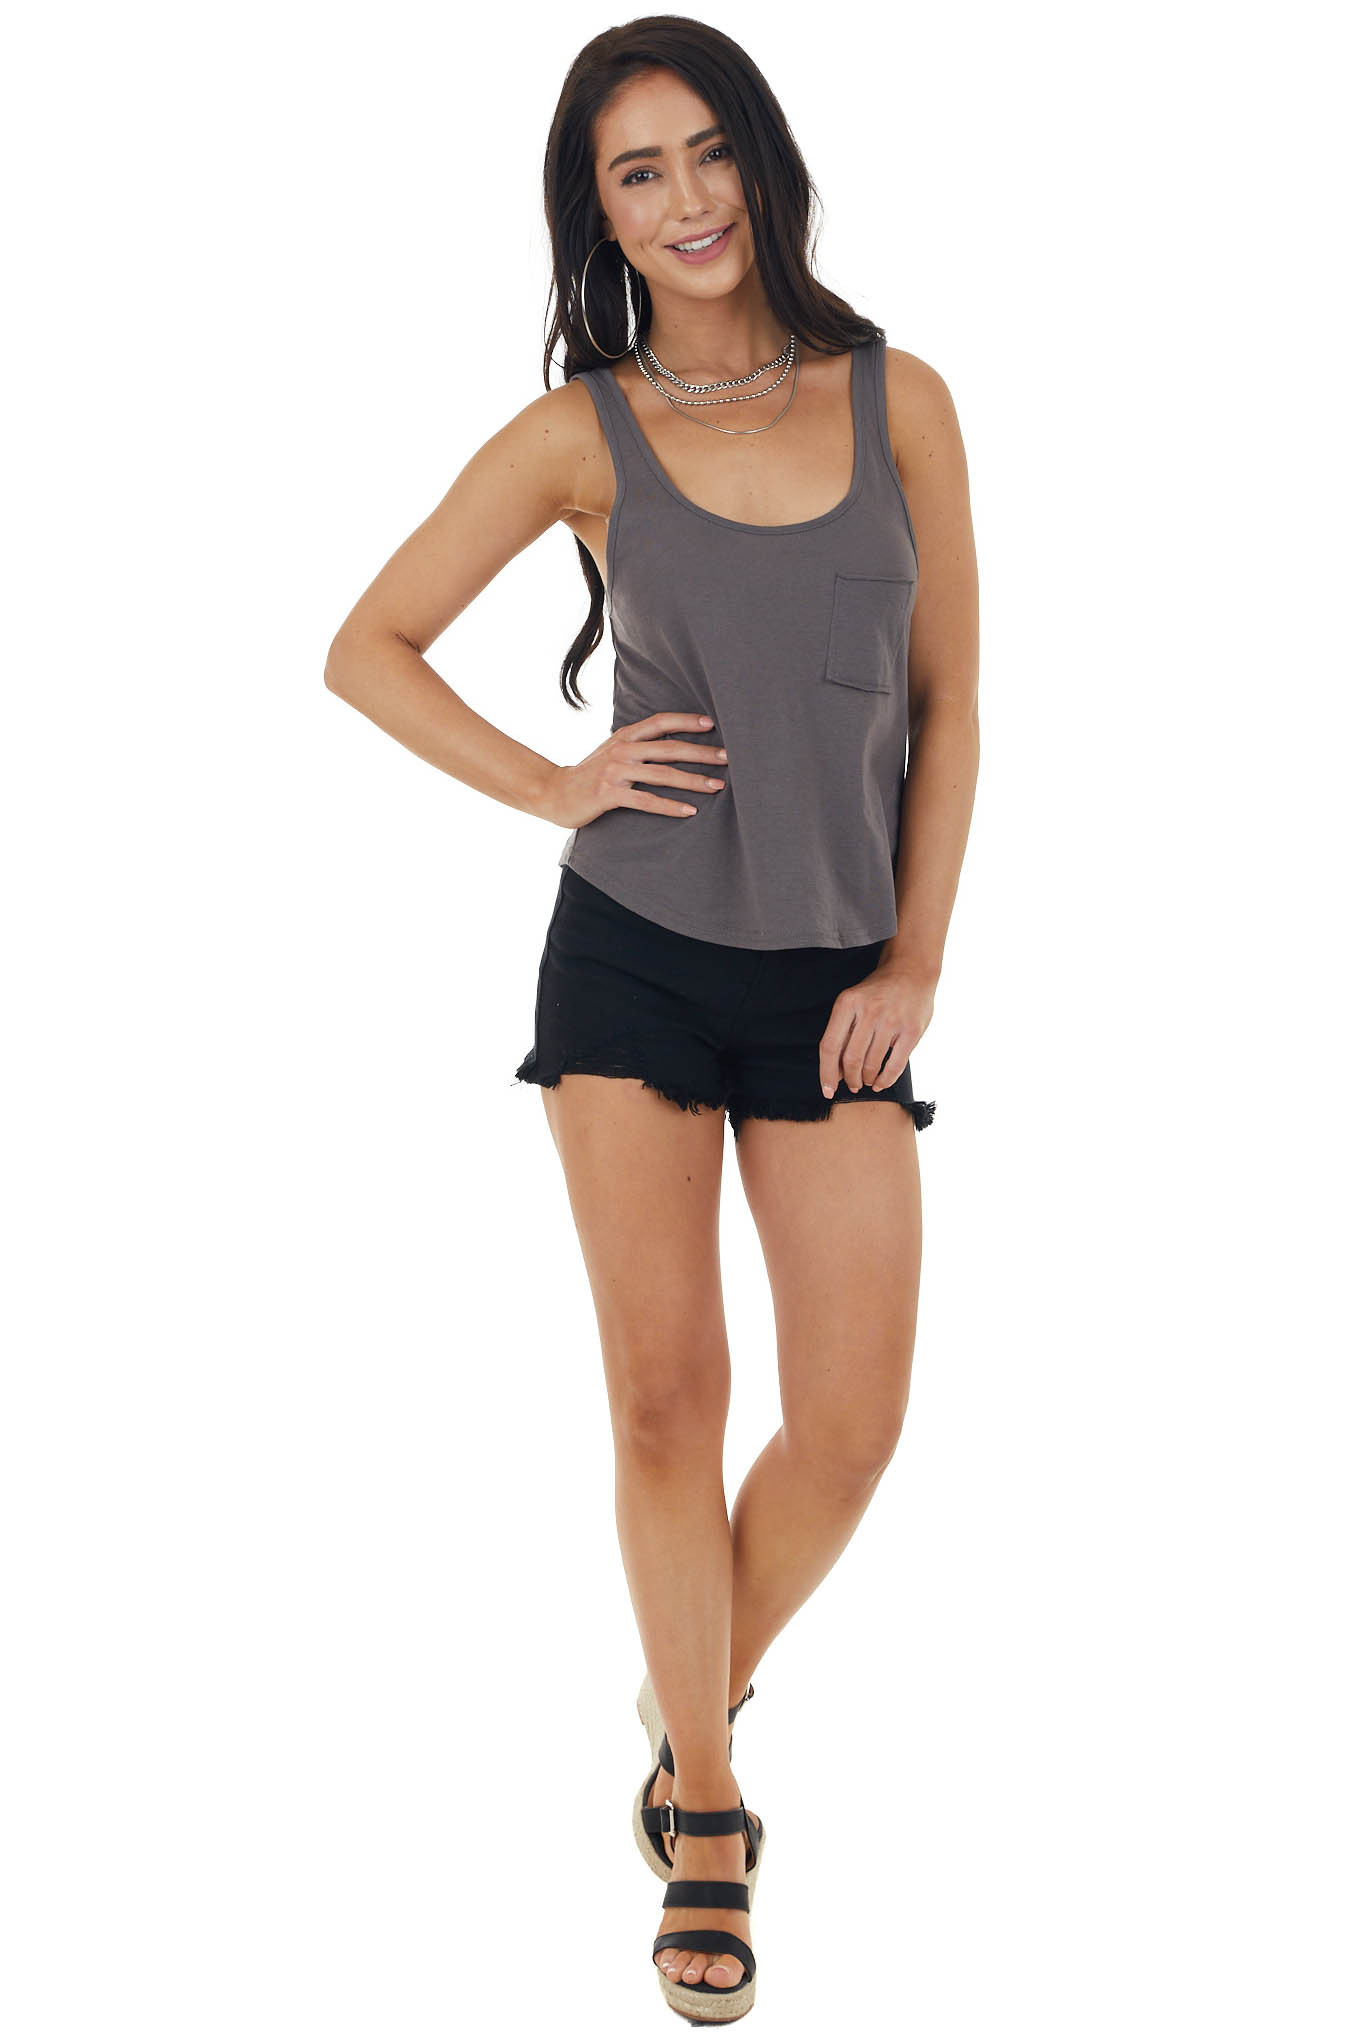 Heathered Charcoal Lightweight Knit Tank Top with Pocket